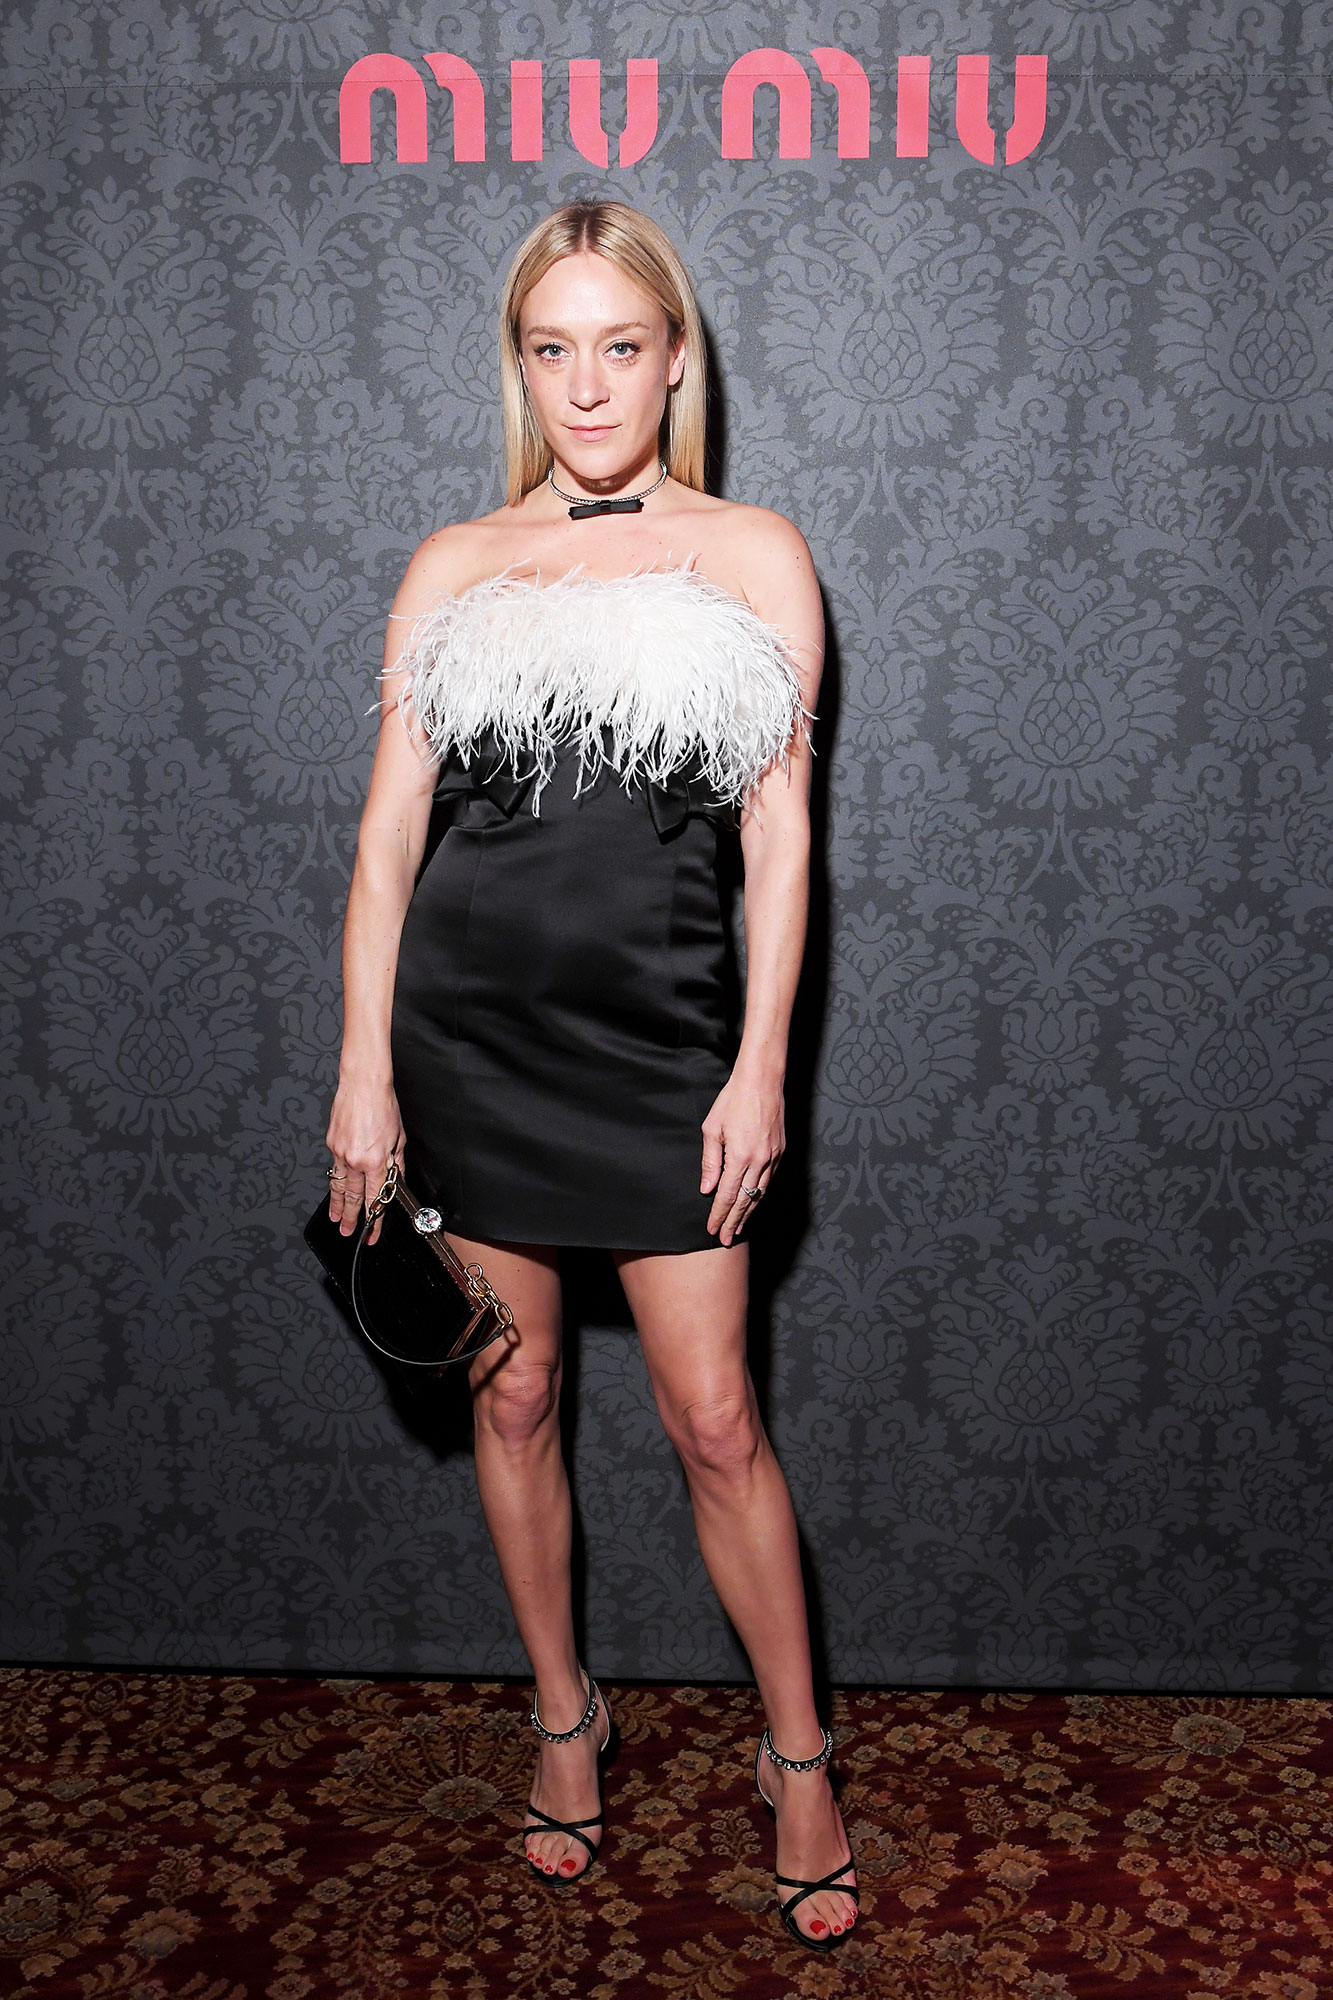 Chloe Sevigny Stars Closed Out Paris Fashion Week on a Sartorial High Note - The actress kept things short and sweet in her feathery minidress at the Miu Miu party on Tuesday, March 5.